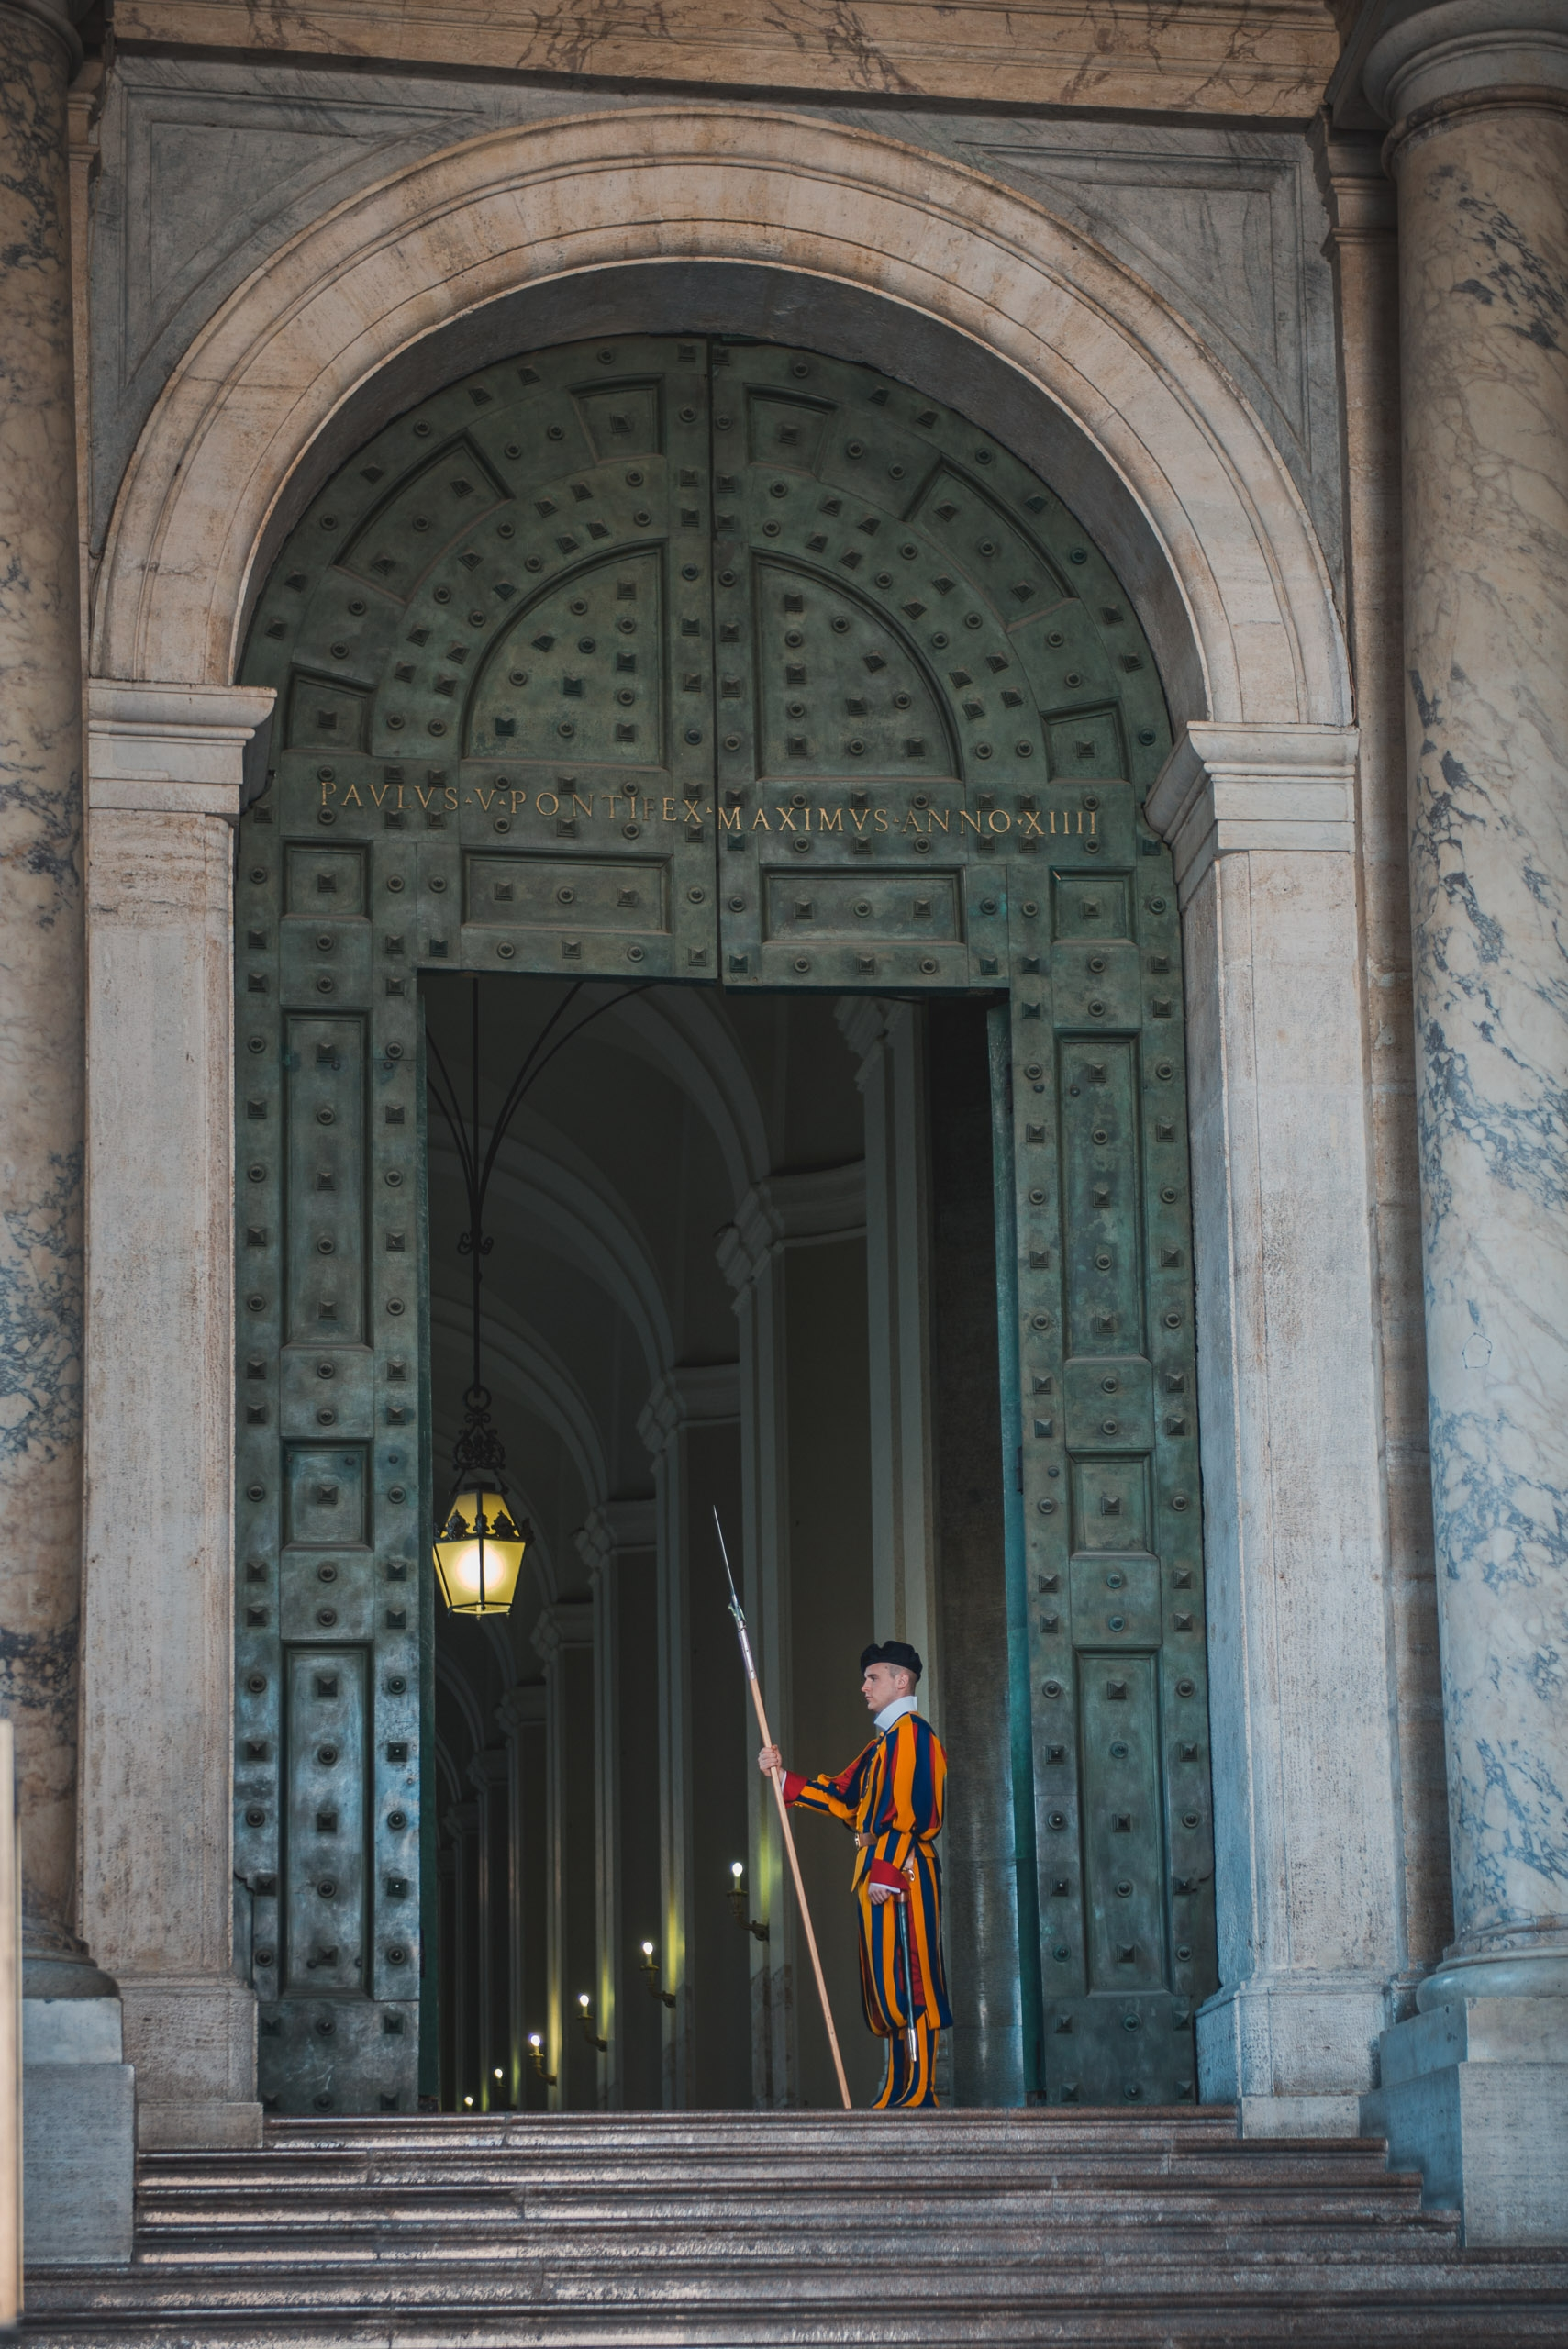 The Swiss Guard Outside St Peters Basilica